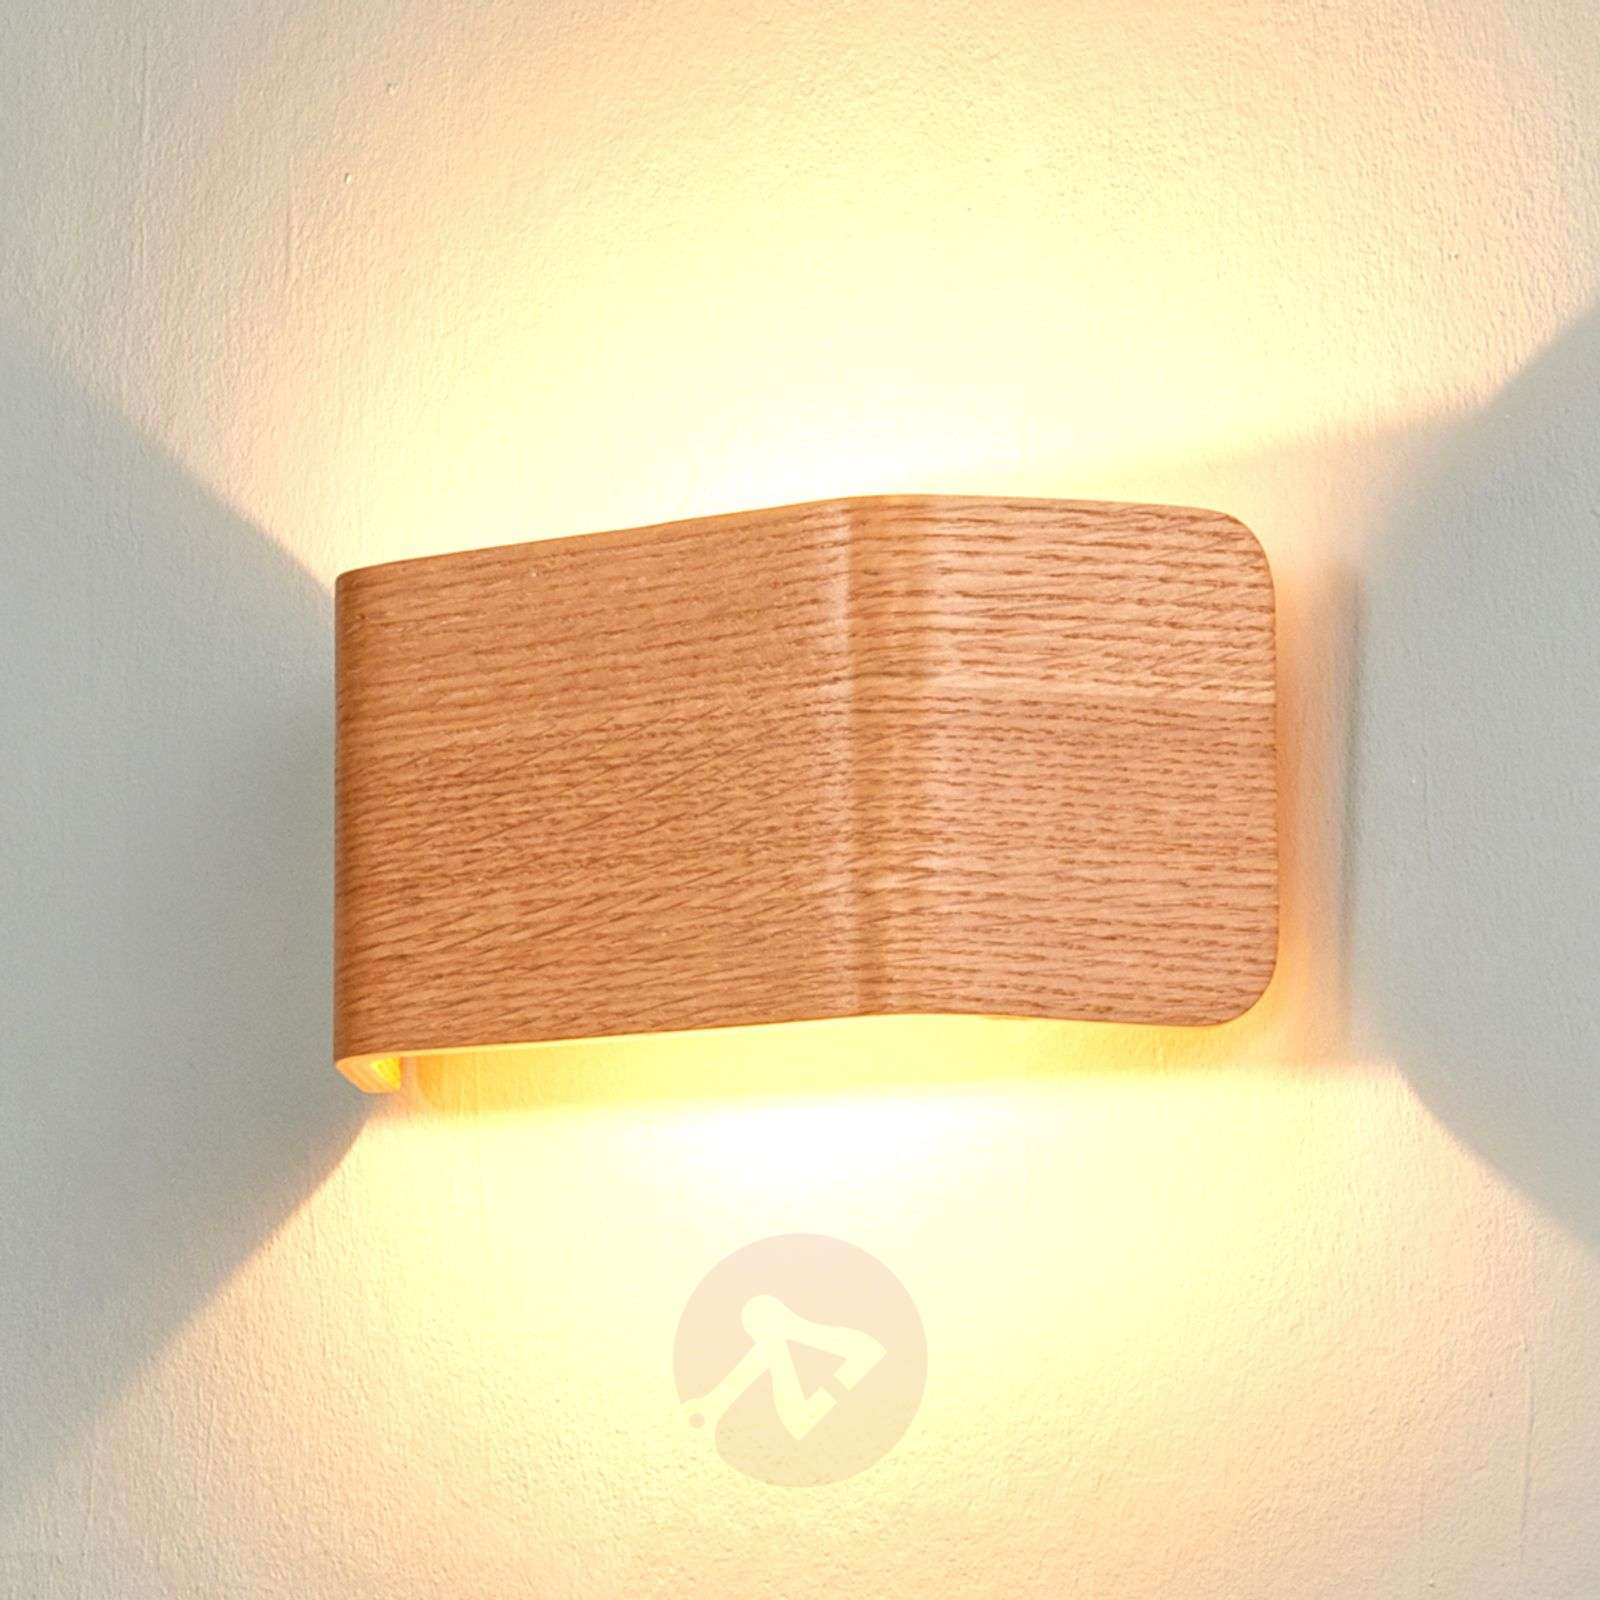 Wooden wall lights buy online top designs lights wood coloured led wall light skate aloadofball Gallery